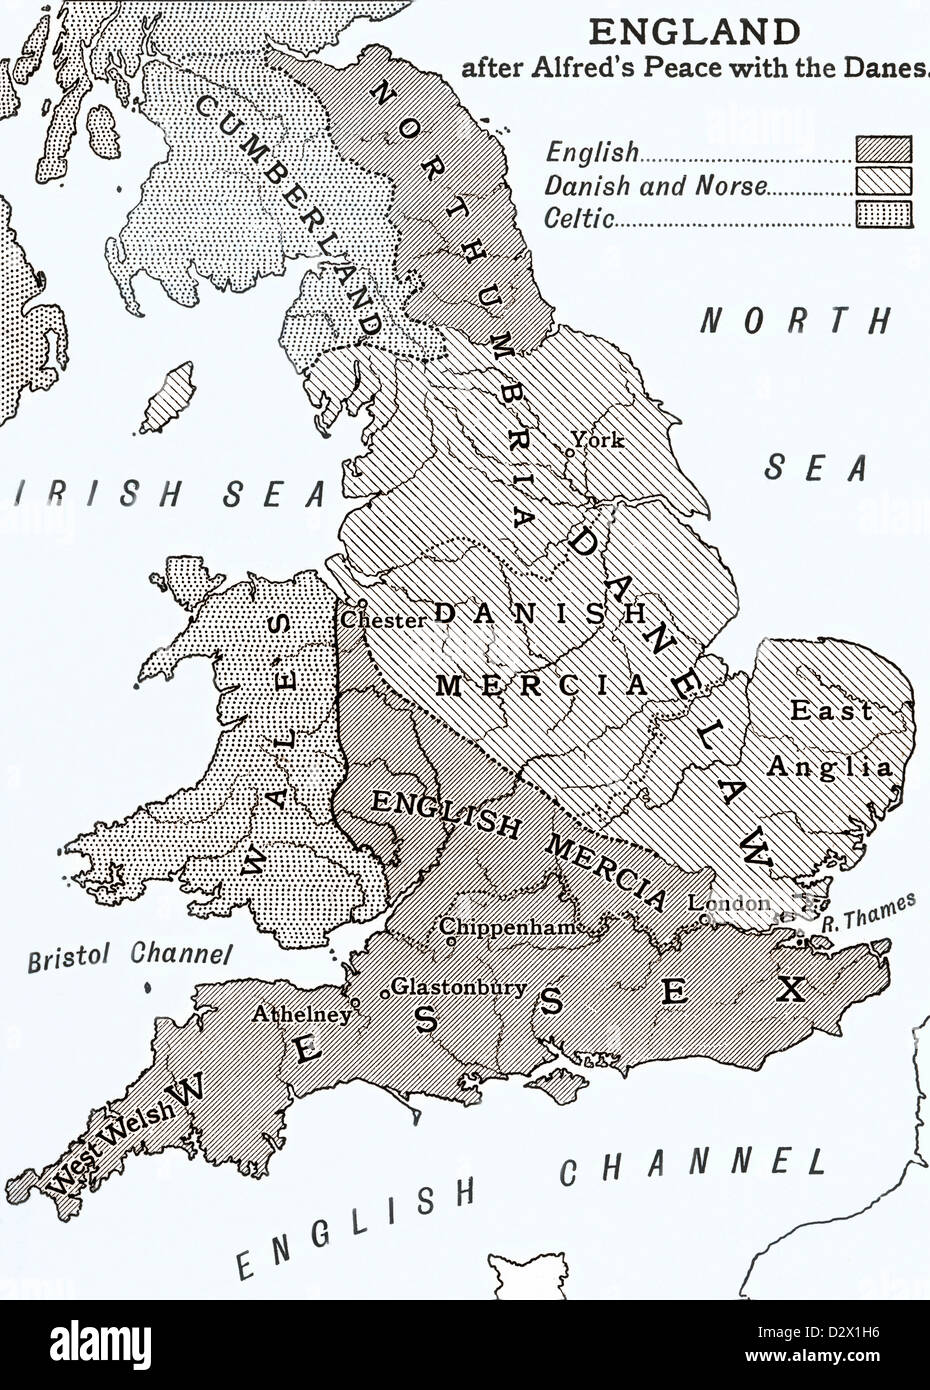 Map Of England King Alfred.A Map Of England After King Alfred S Peace With The Danes In The 9th